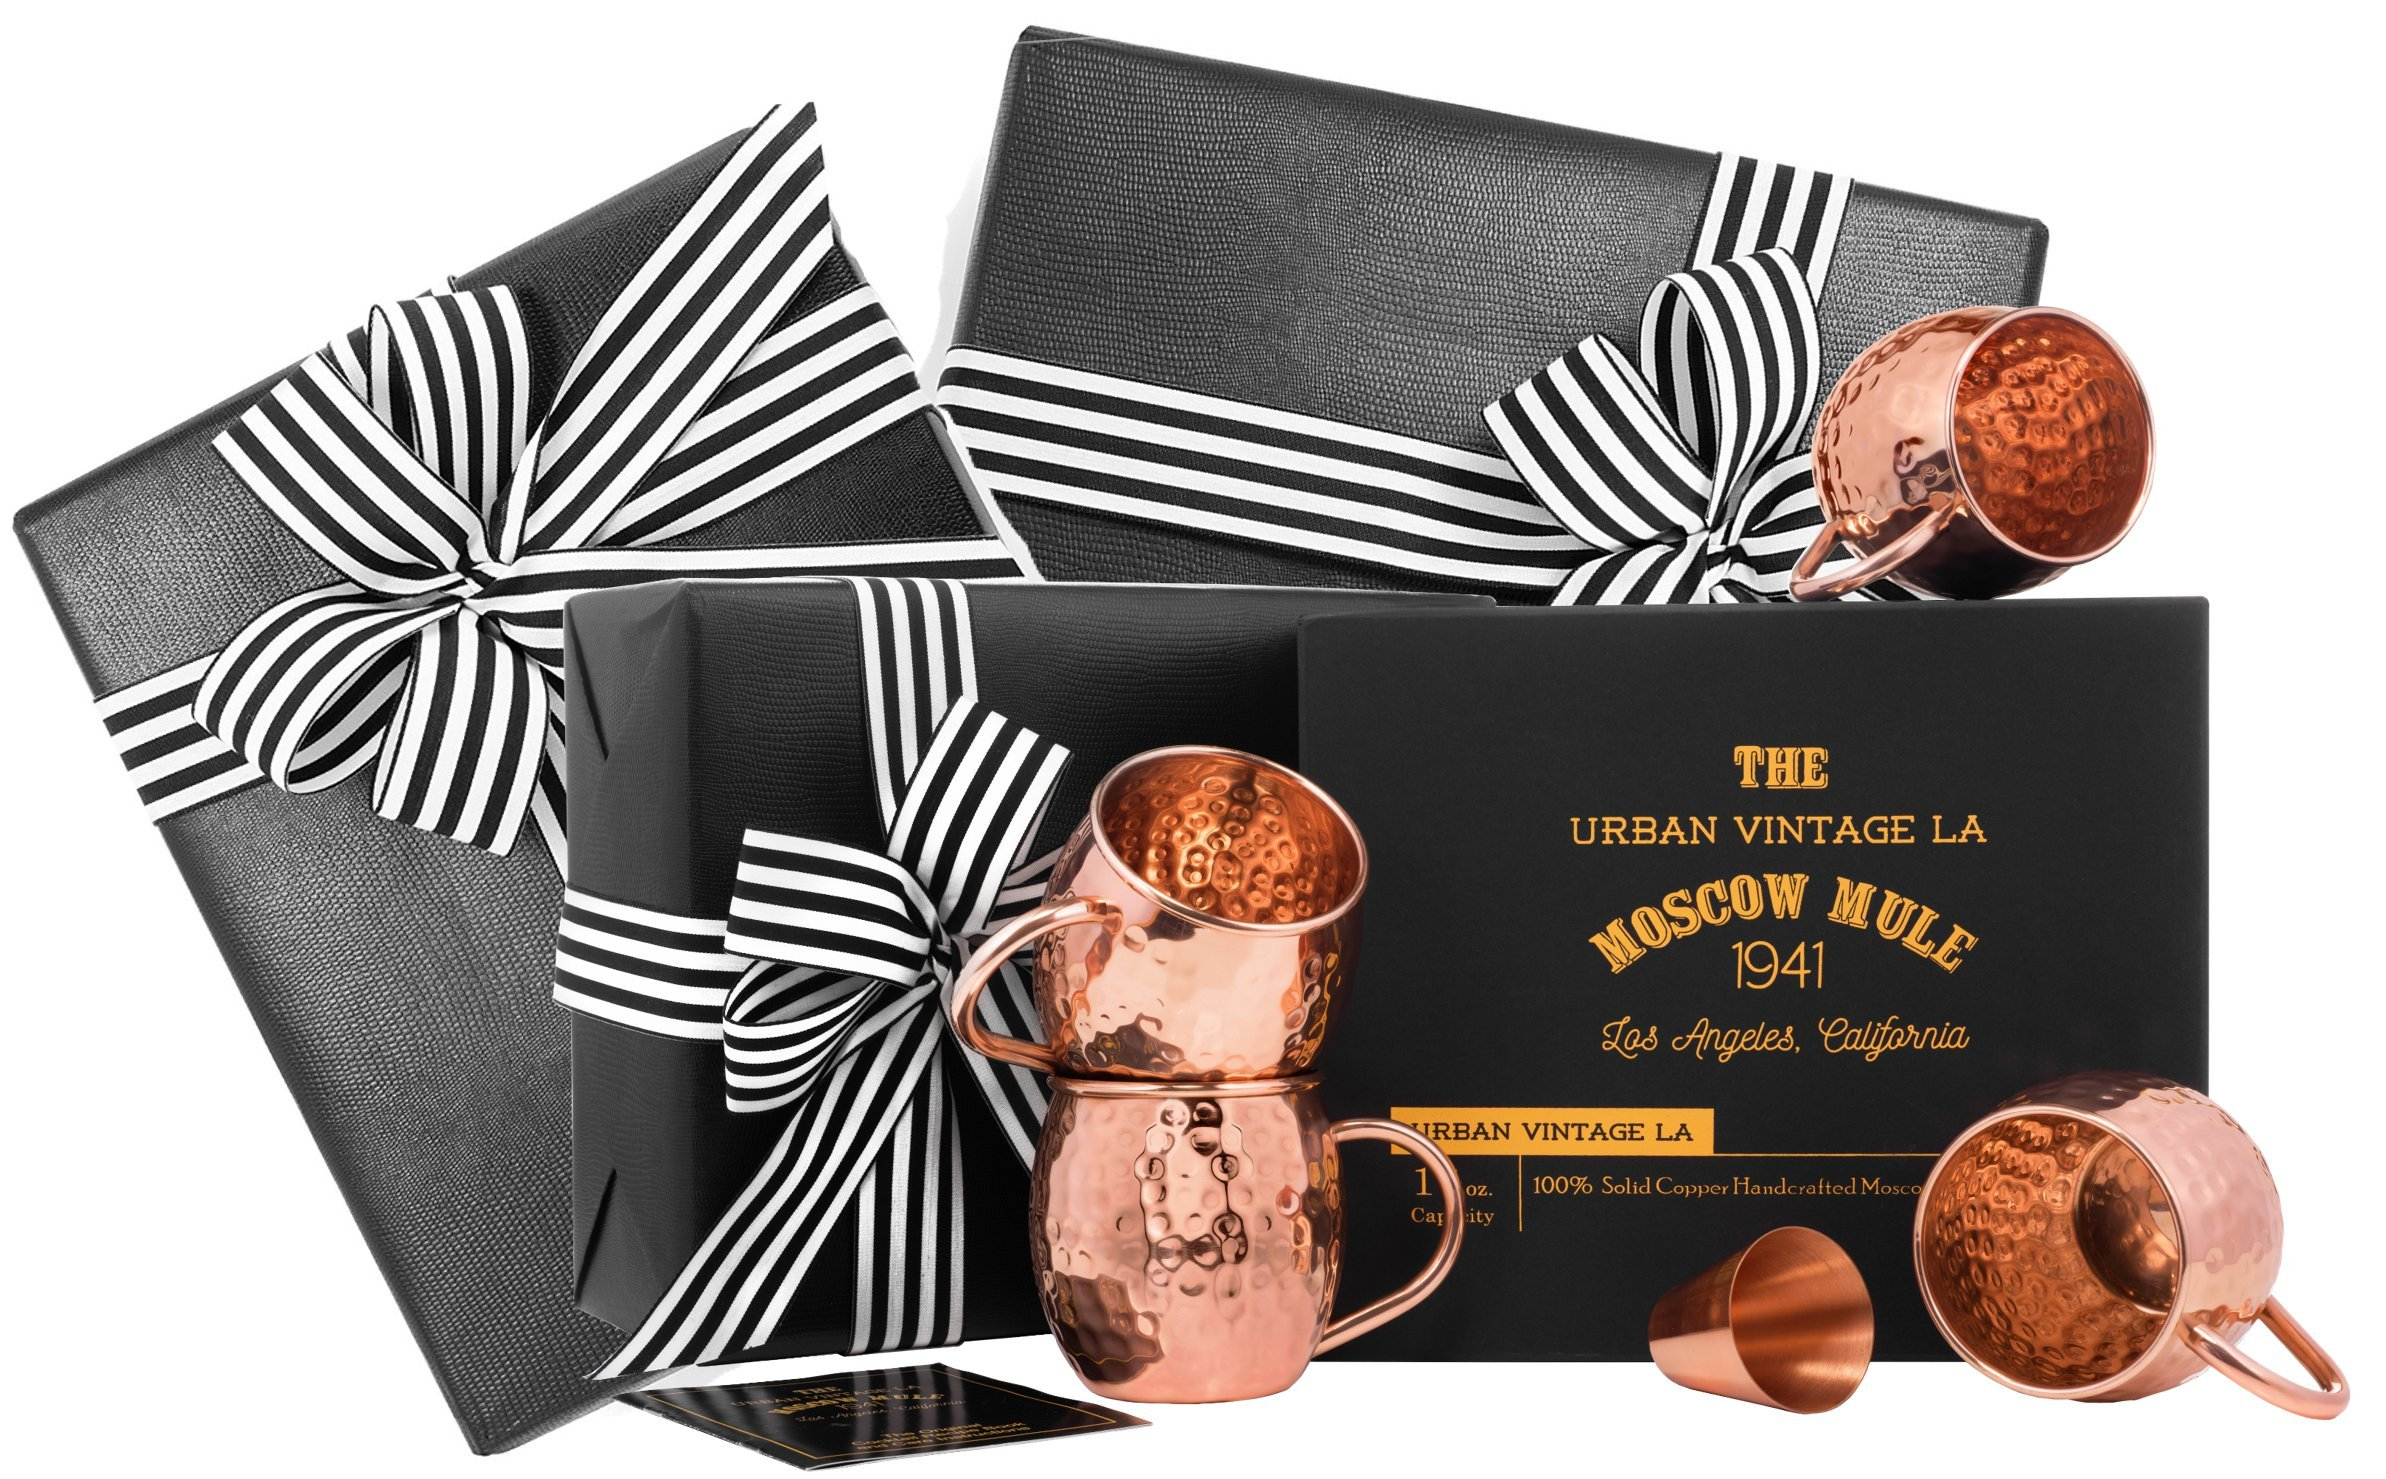 Gift Wrapped Moscow Mule Copper Mugs Set of 4, 100% Solid Copper, Handcrafted, Hammered, Heavy Gauge Copper Cups Gift Boxed with Shot Glass & Recipe Book, Premium Gift Set for Men, Women, Wedding, 7th